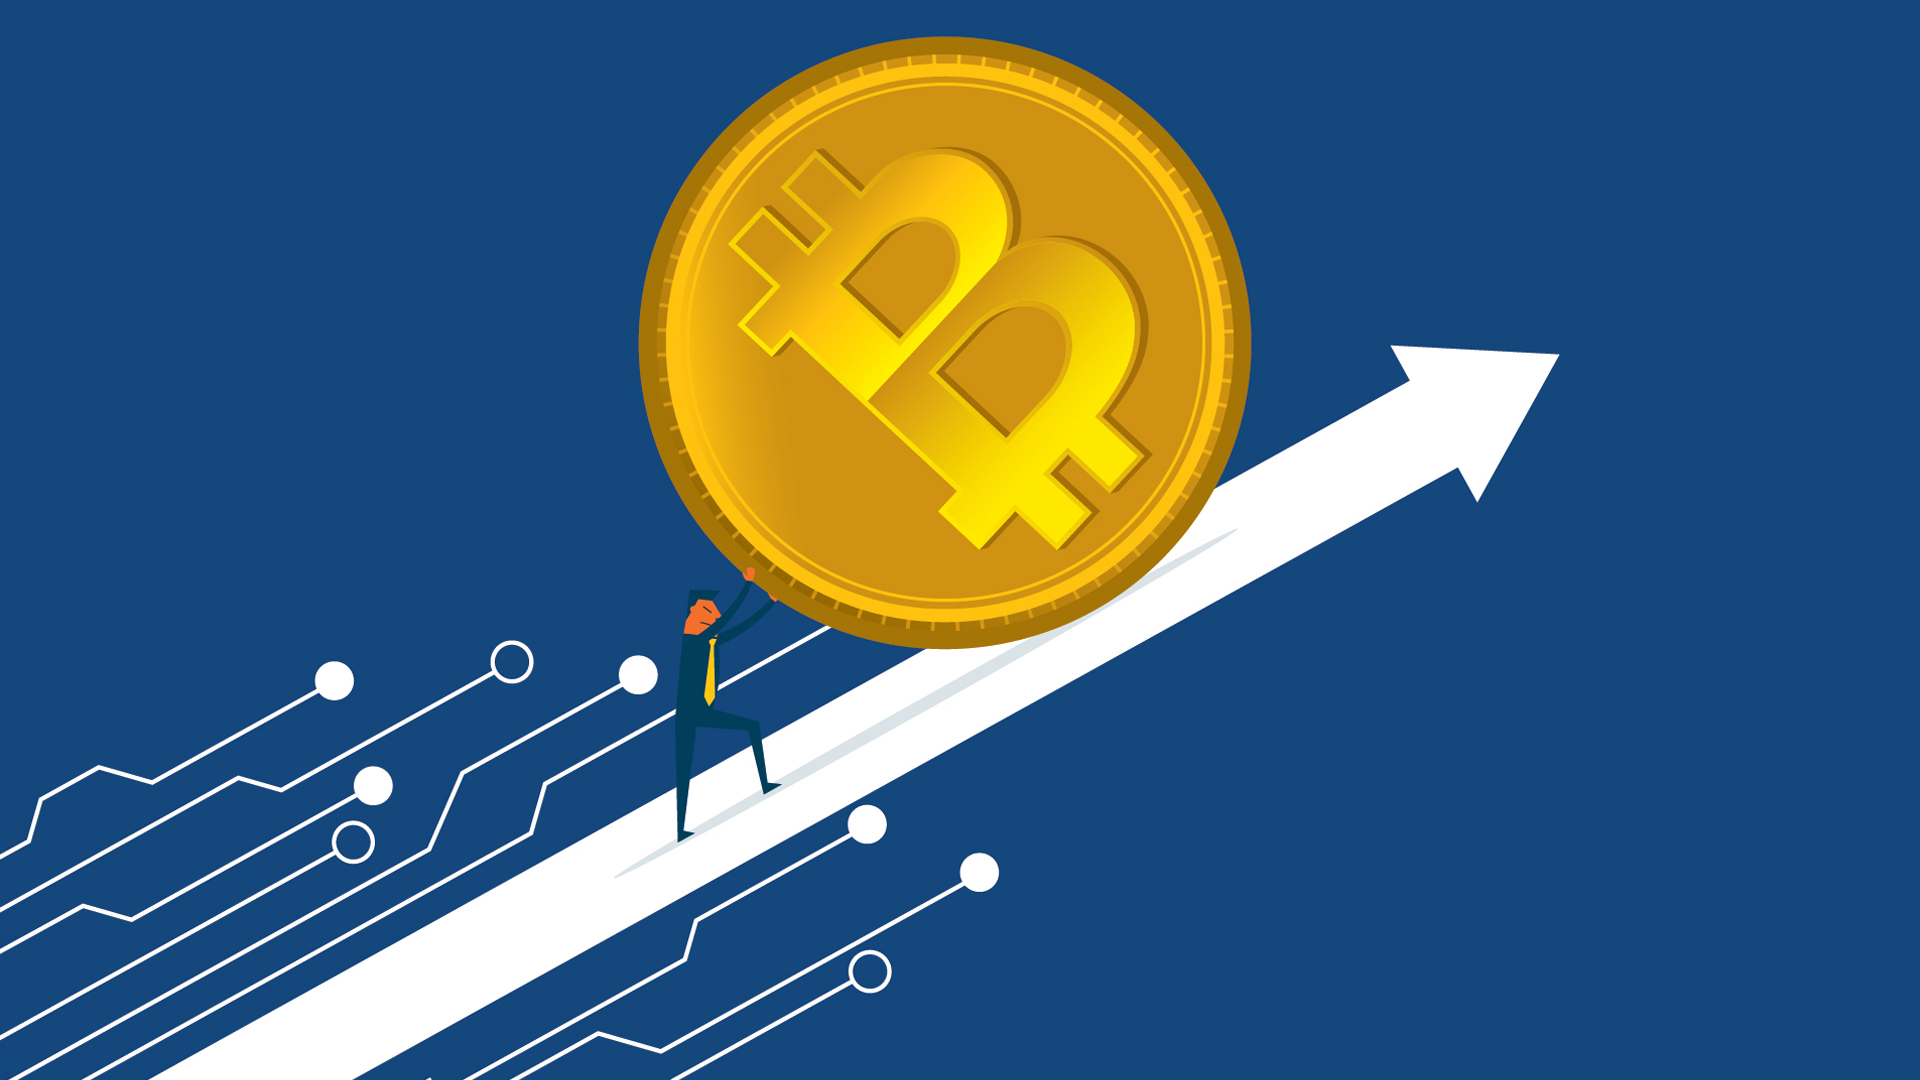 Bitcoin Price Index — Real-time Bitcoin Price Charts